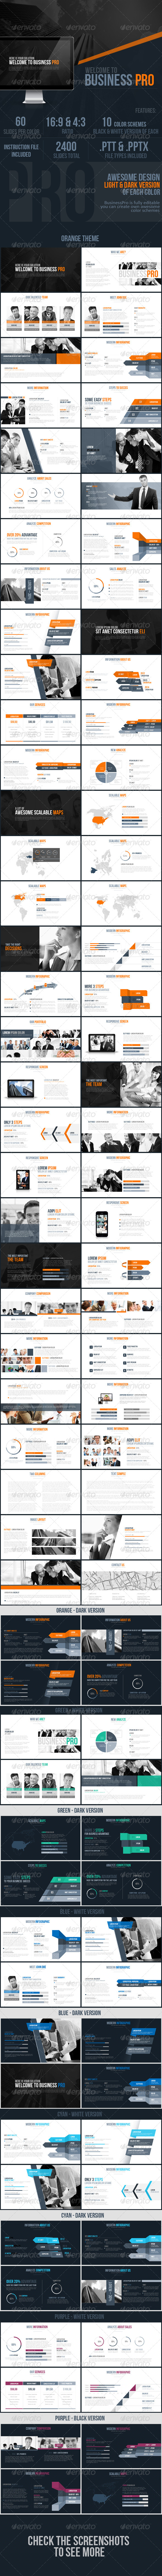 GraphicRiver Business Pro Powerpoint Presentation Template 8329510